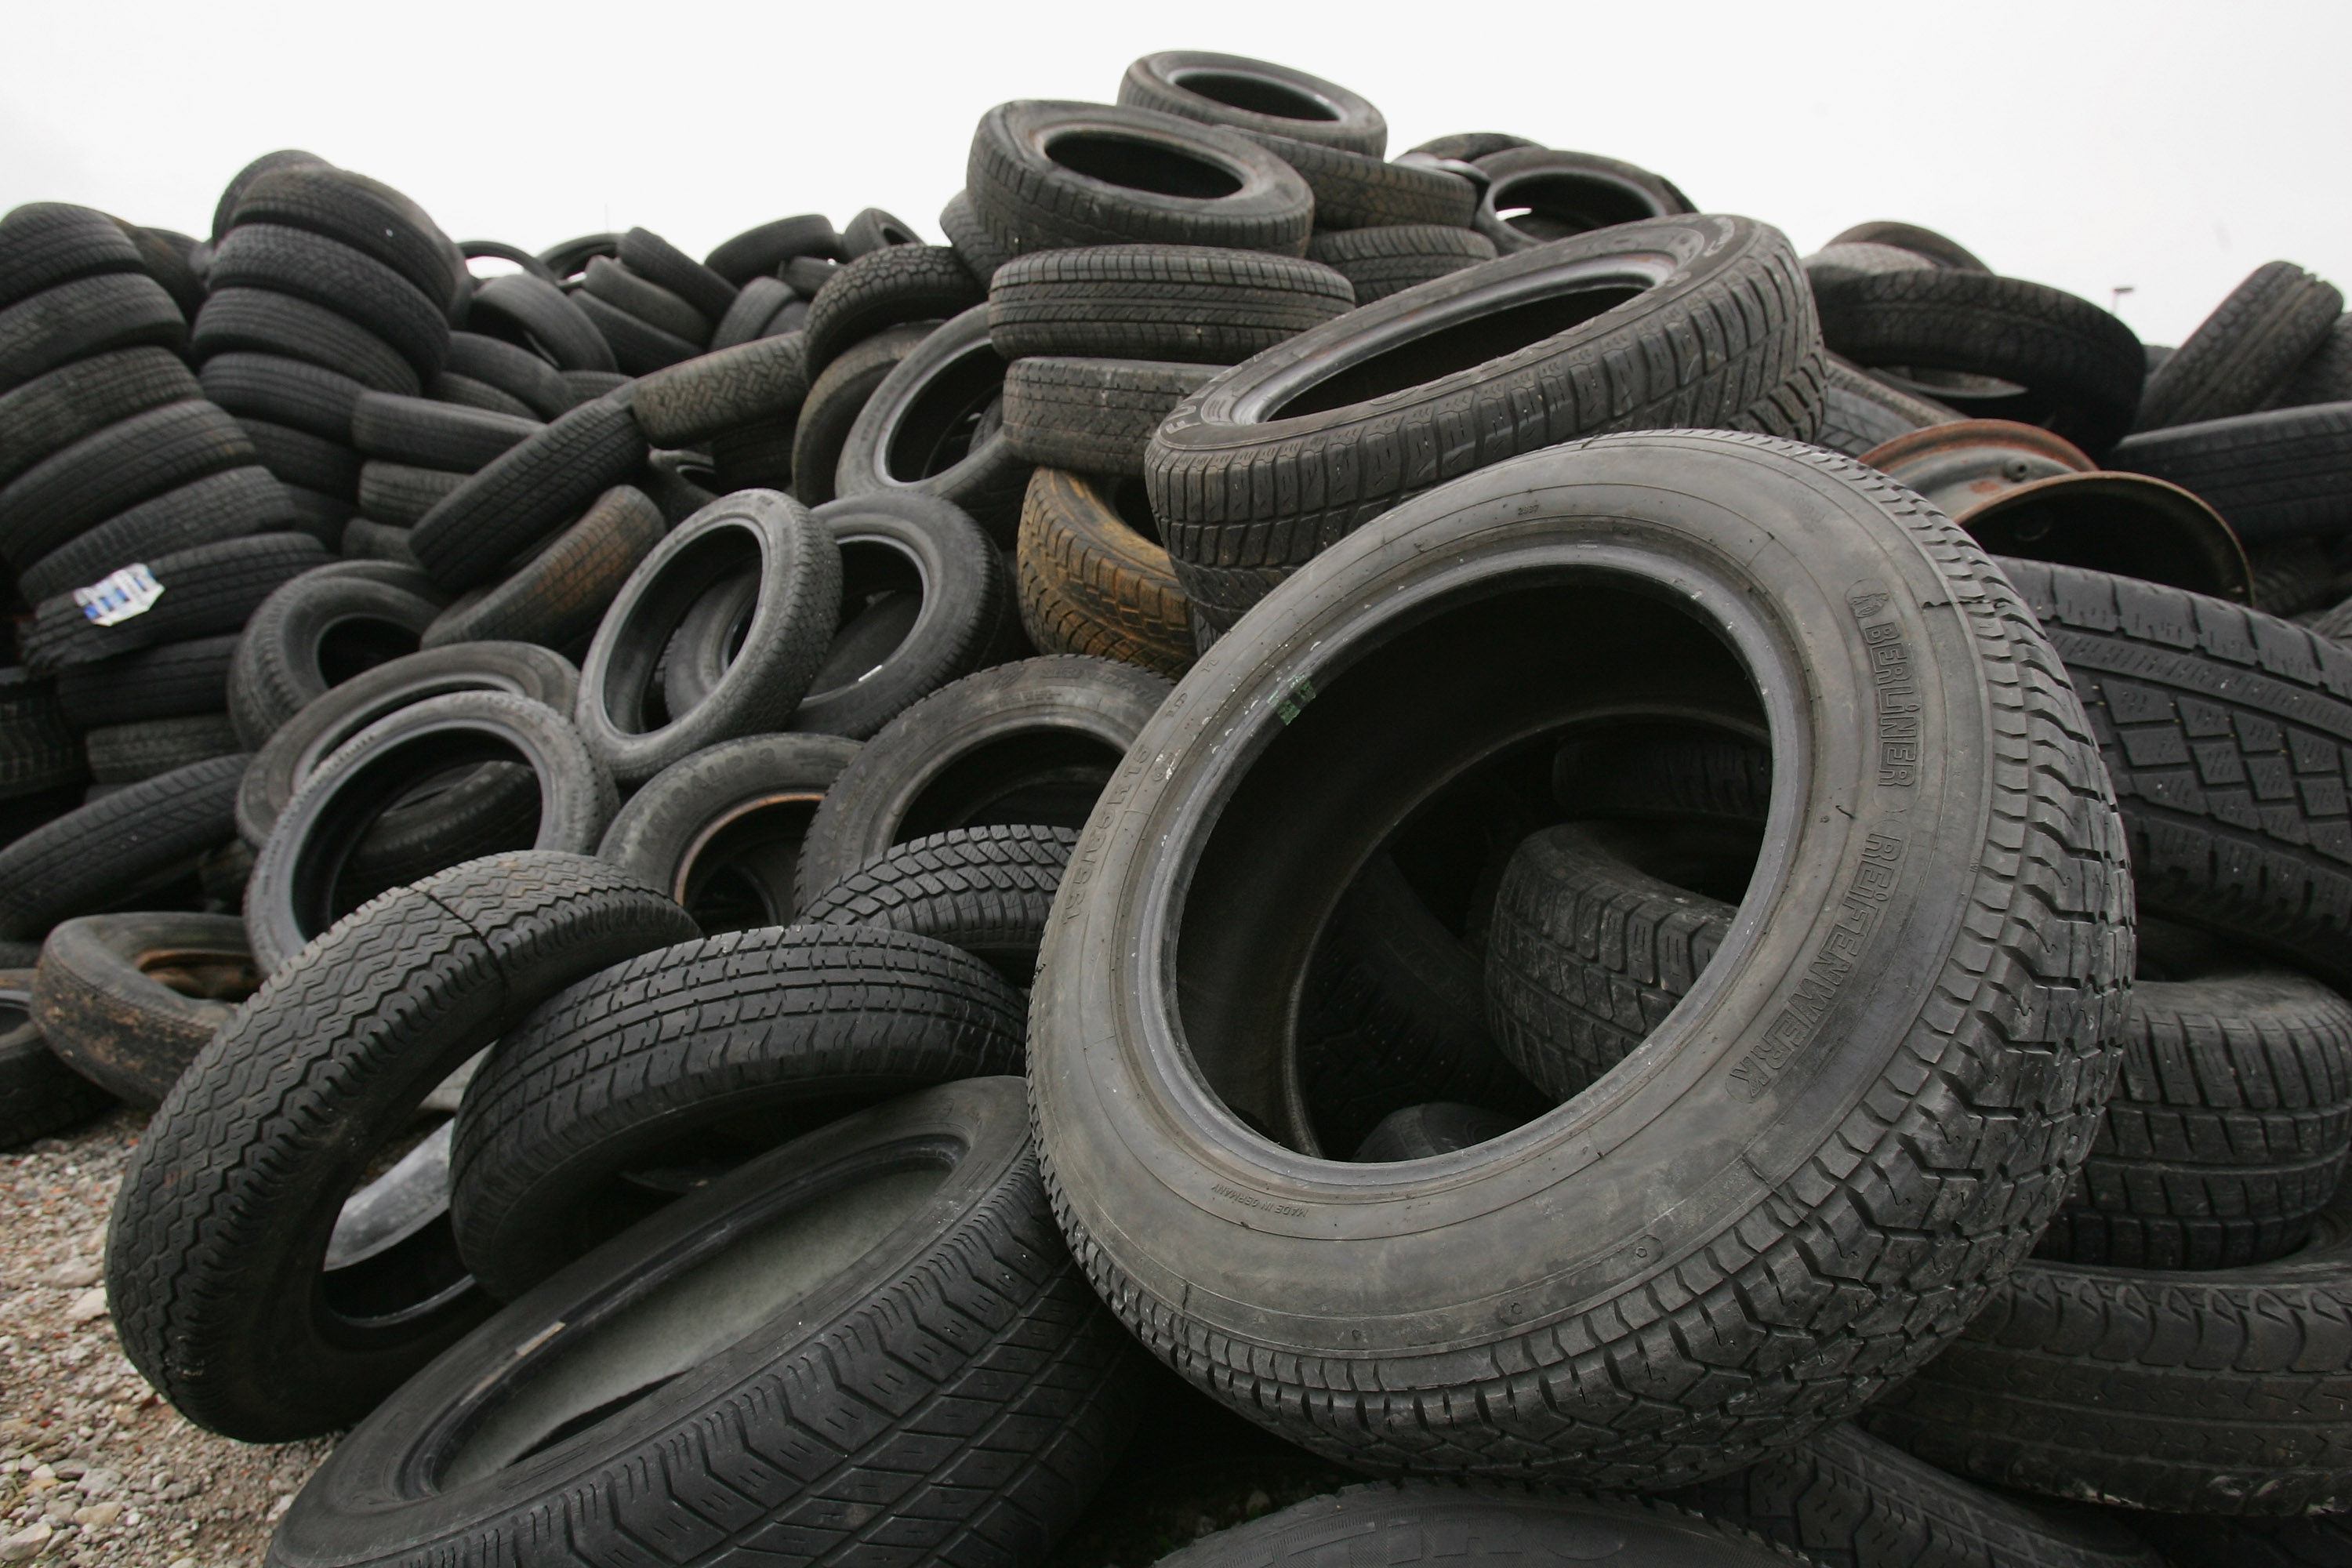 Tires are one of the strangest things found in a Sharks Stomach